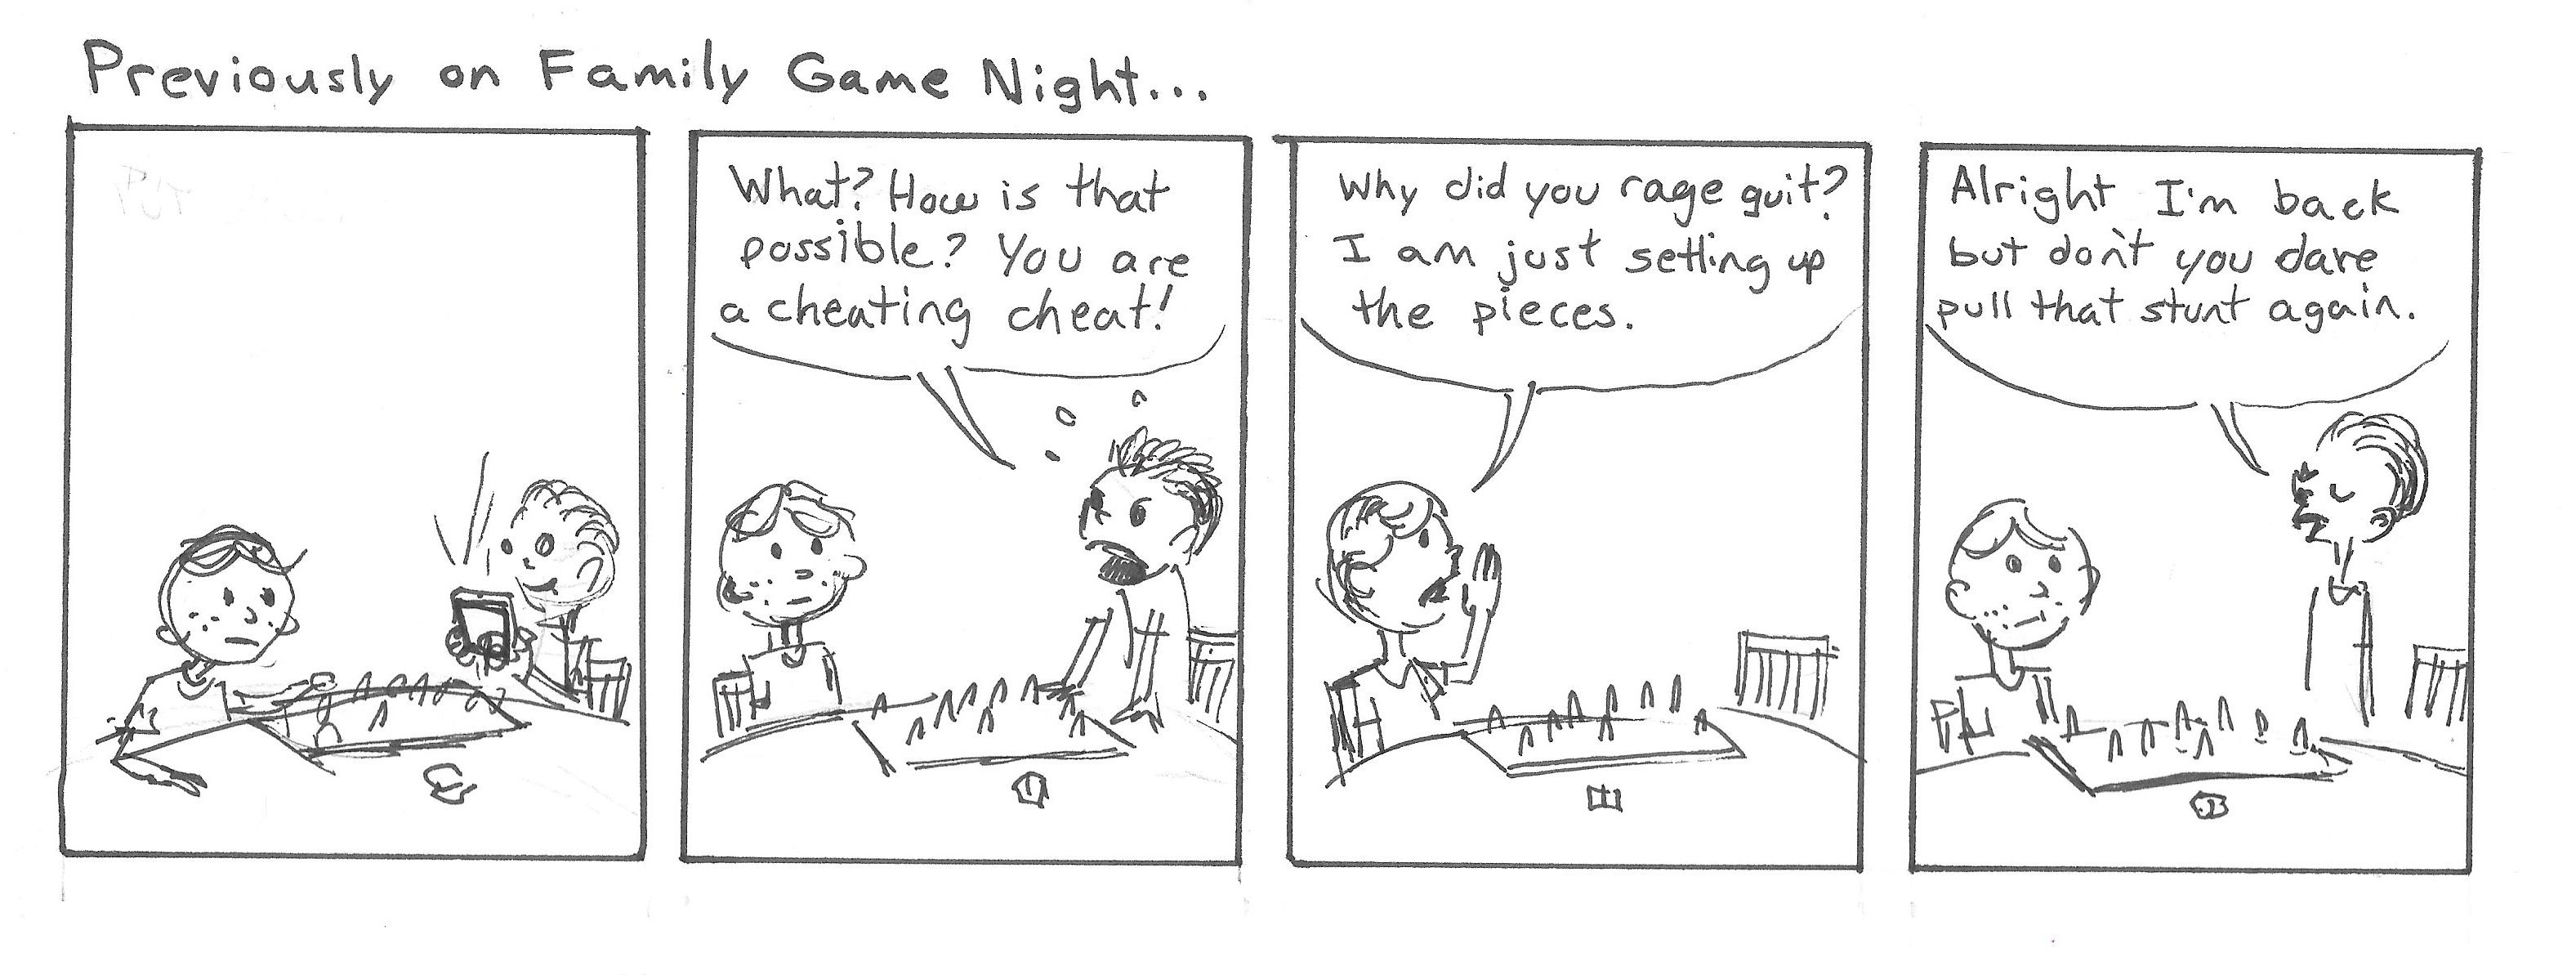 Previously on Family Game Night...